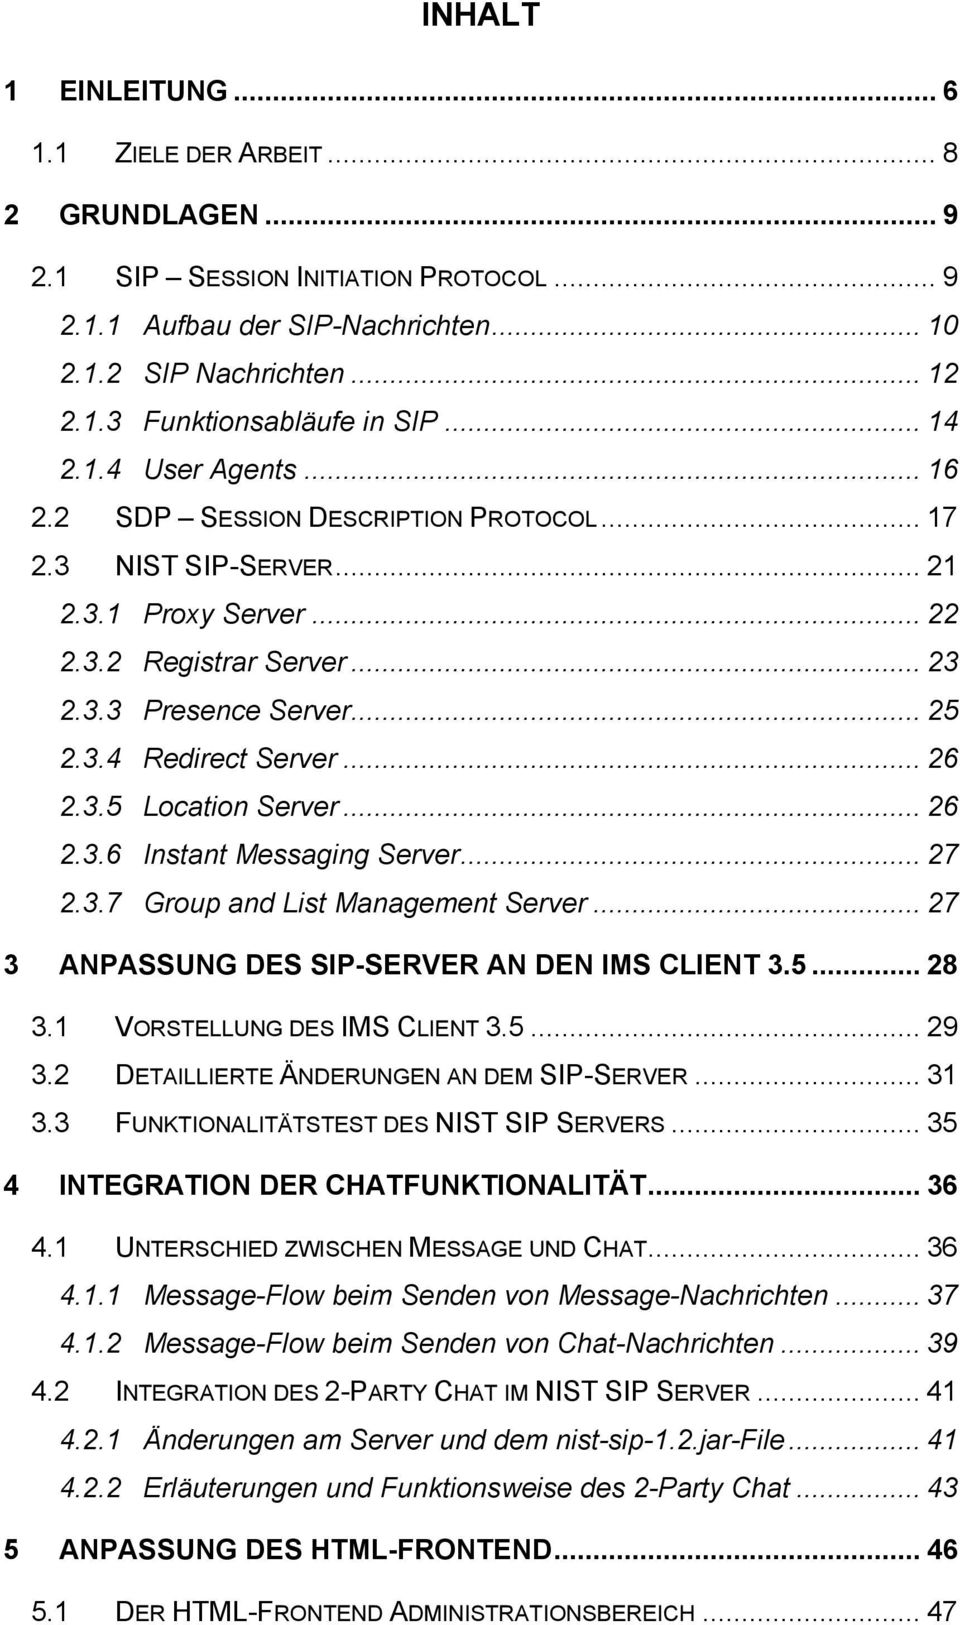 .. 26 2.3.5 Location Server... 26 2.3.6 Instant Messaging Server... 27 2.3.7 Group and List Management Server... 27 3 ANPASSUNG DES SIP-SERVER AN DEN IMS CLIENT 3.5... 28 3.